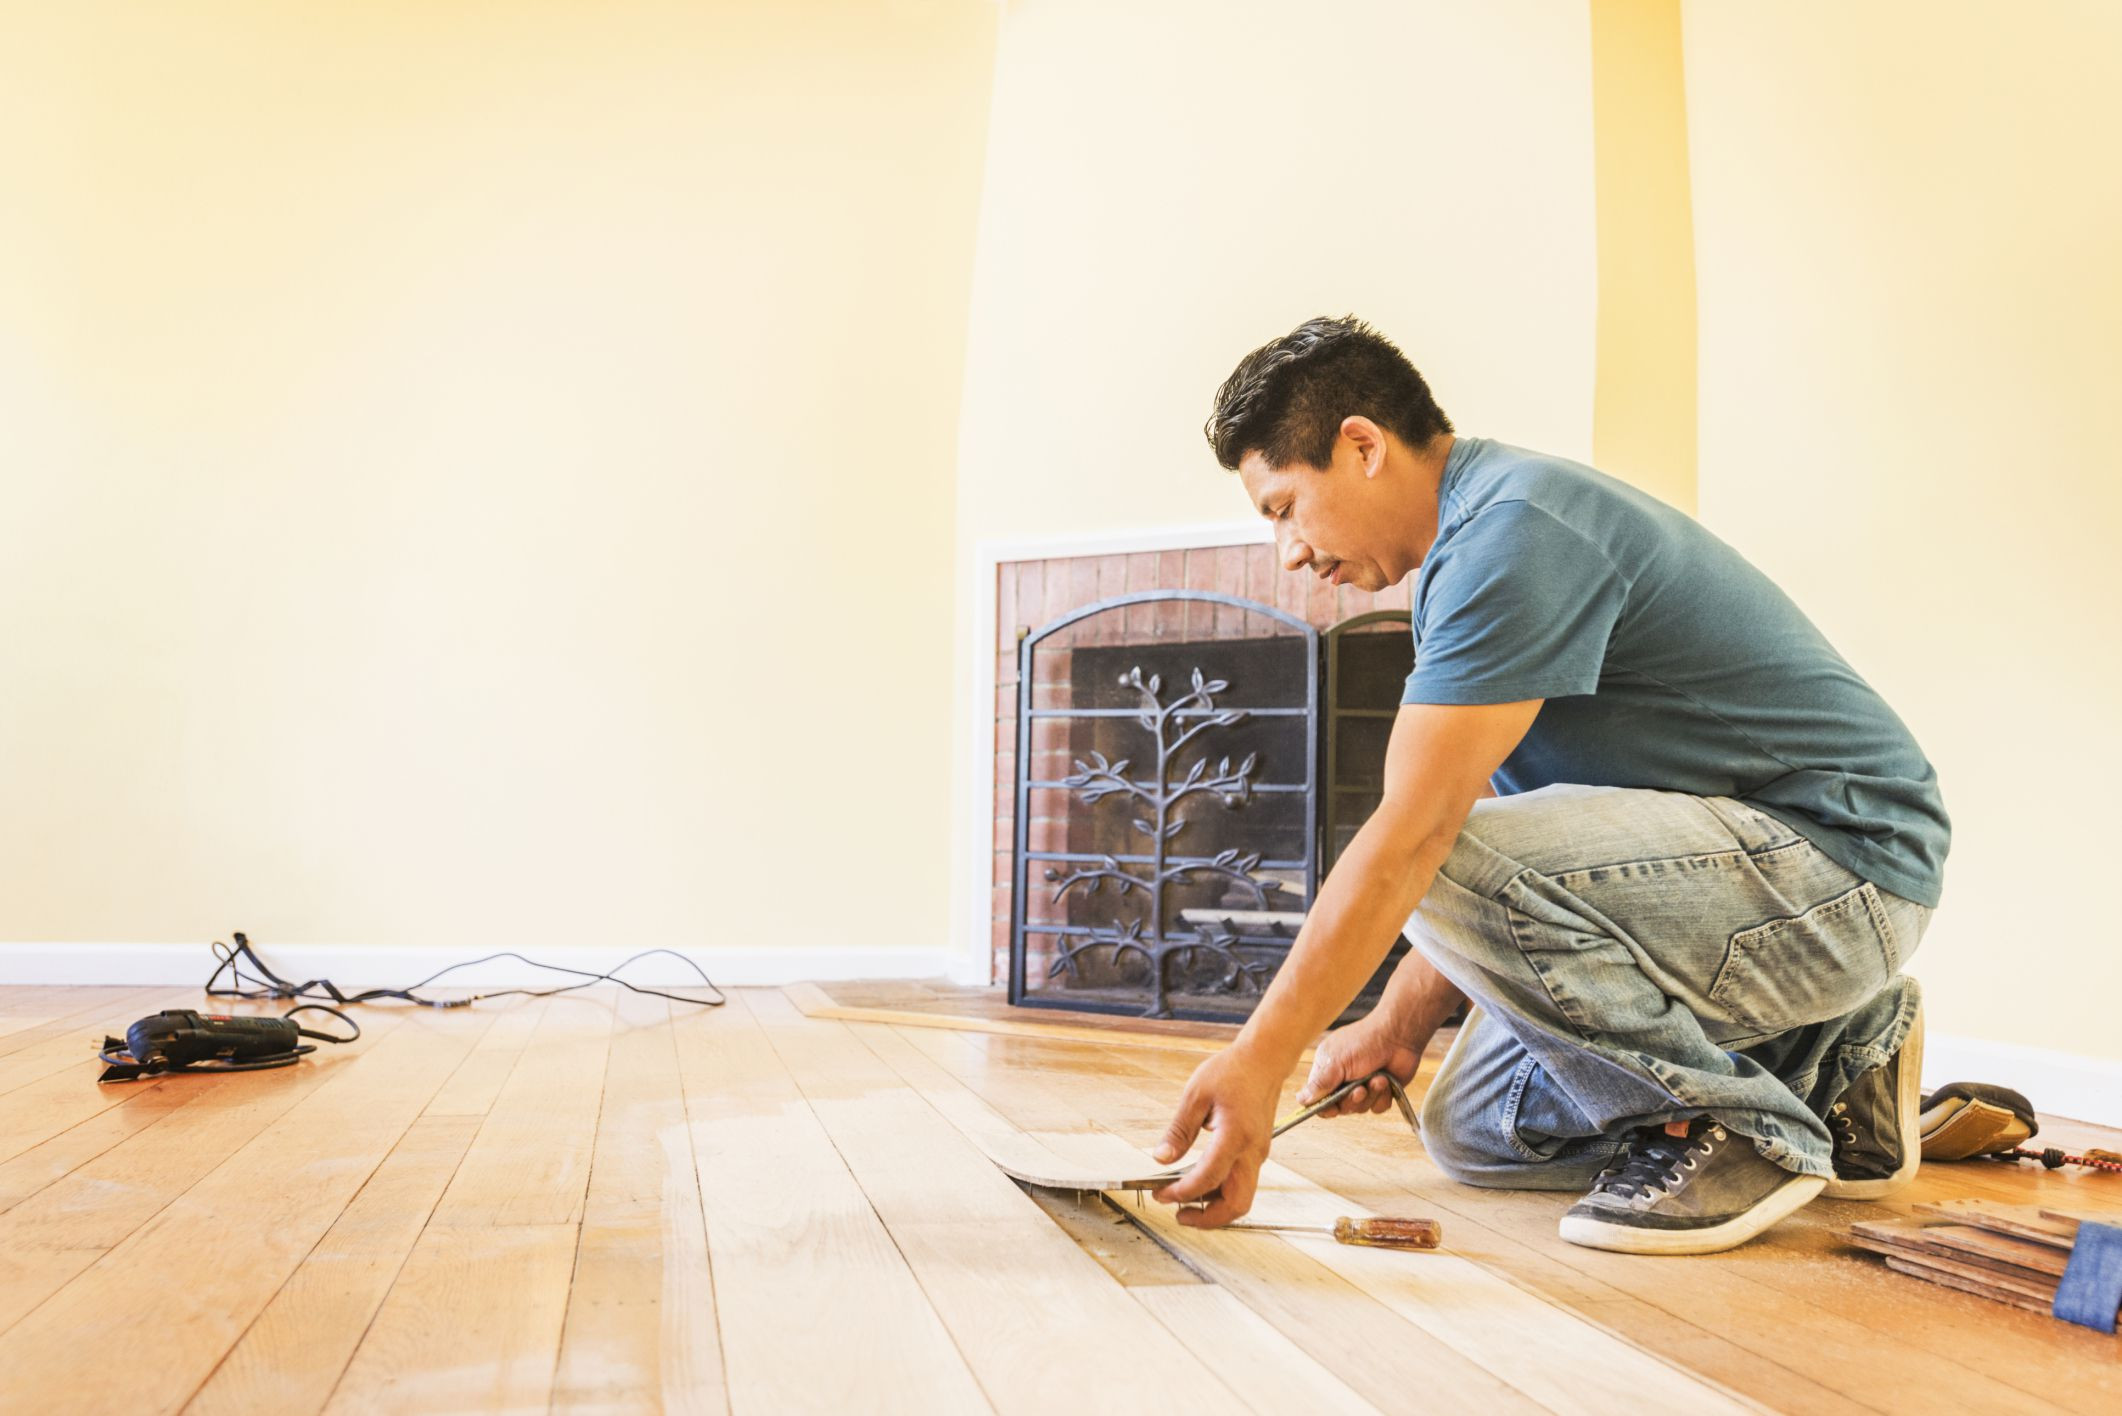 how to install 3 4 hardwood flooring of solid hardwood flooring costs for professional vs diy pertaining to installwoodflooring 592016327 56684d6f3df78ce1610a598a